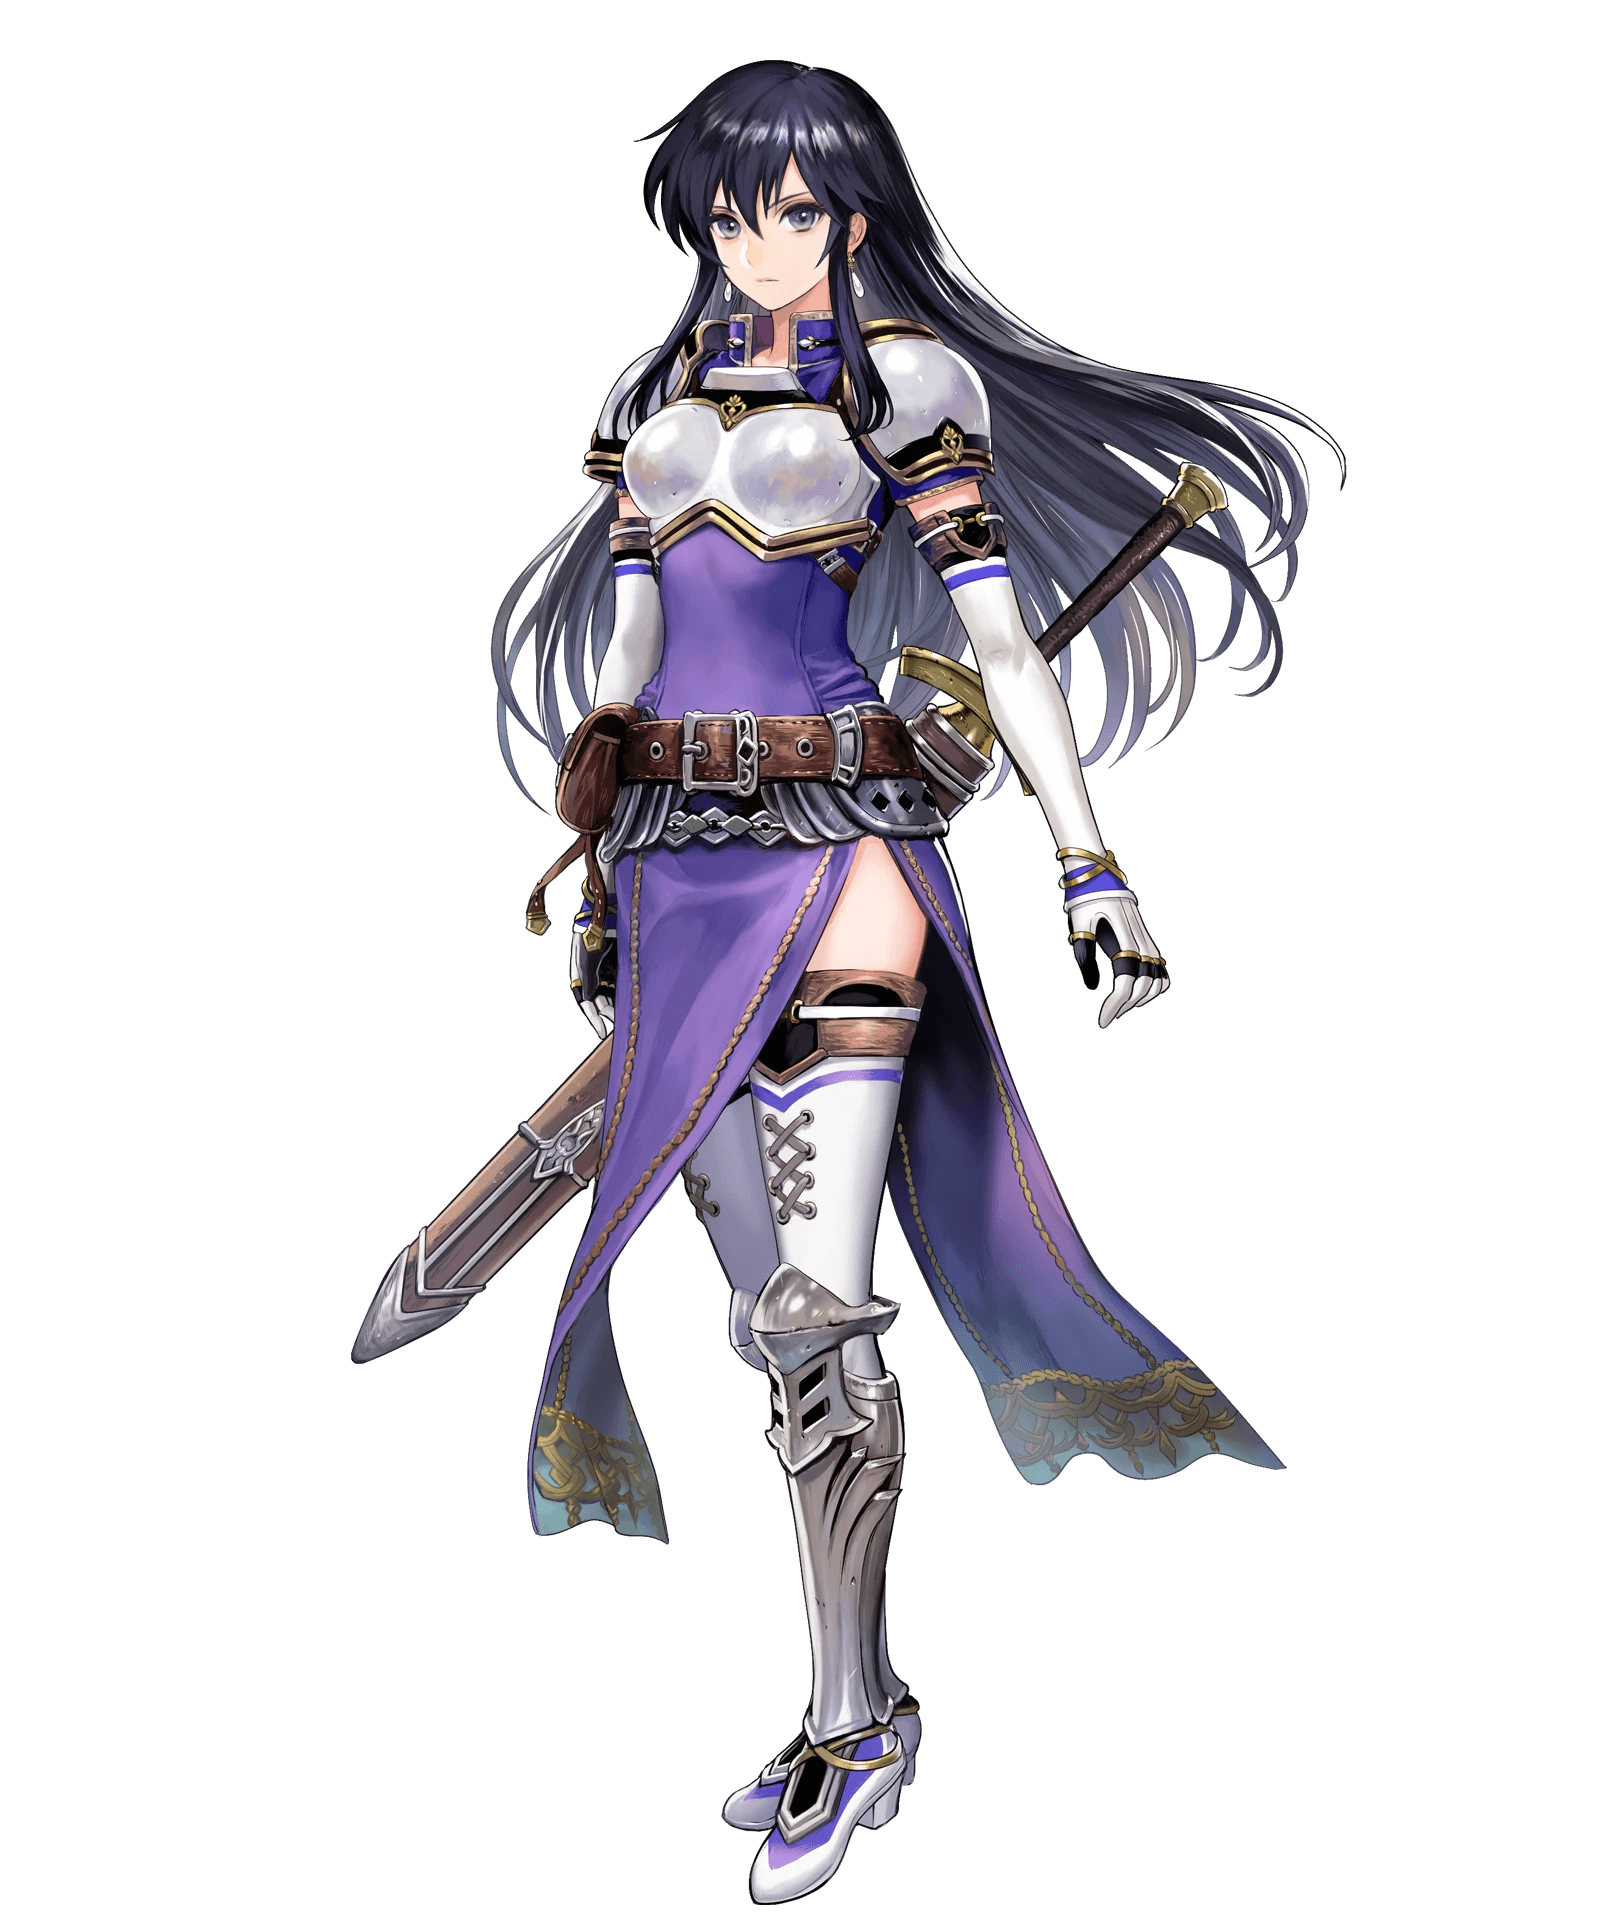 /home/gameworl/public_html/media/kunena/attachments/62095/ayra.png